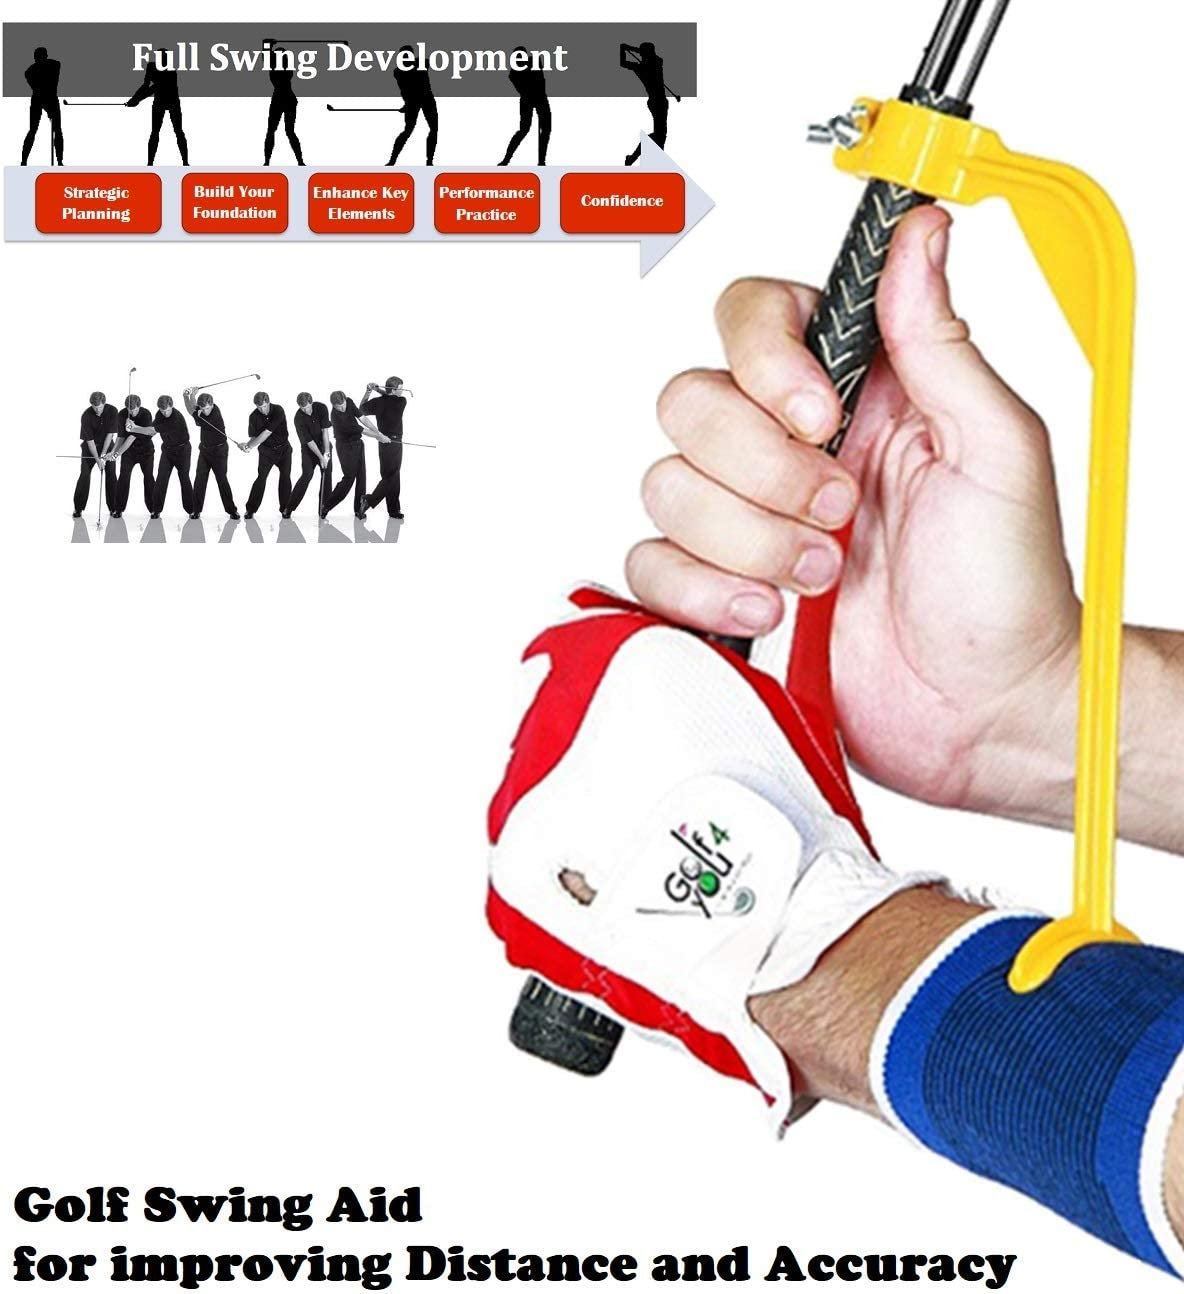 Golf Swing Training Aid | Golf Doctor Wrist Hinge Trainer - Develop A More Consistent Swing Plane - Take Your Golf Game to The Next Level